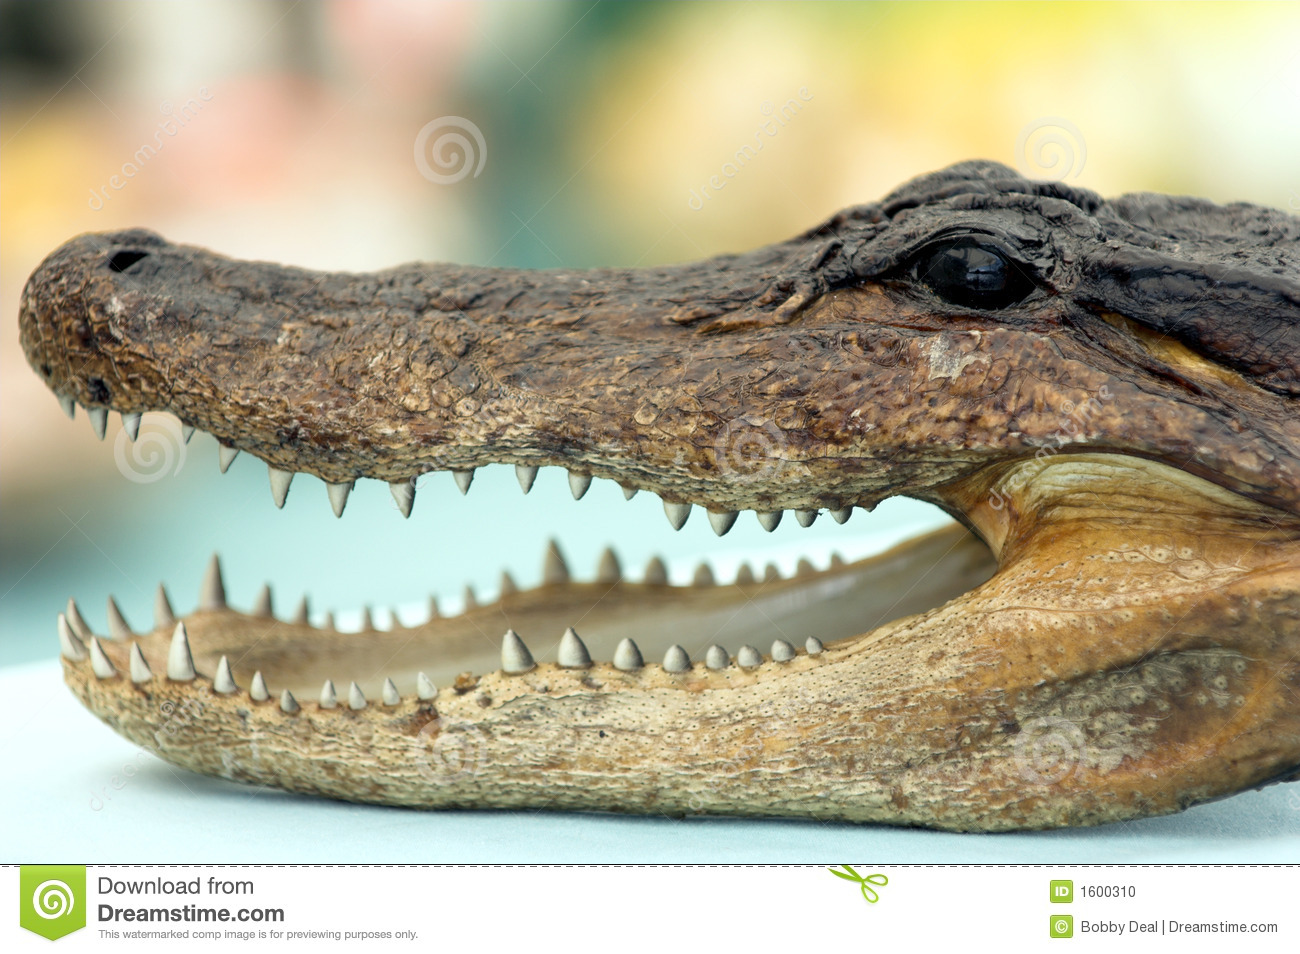 Close up detail of a mounted alligator head.